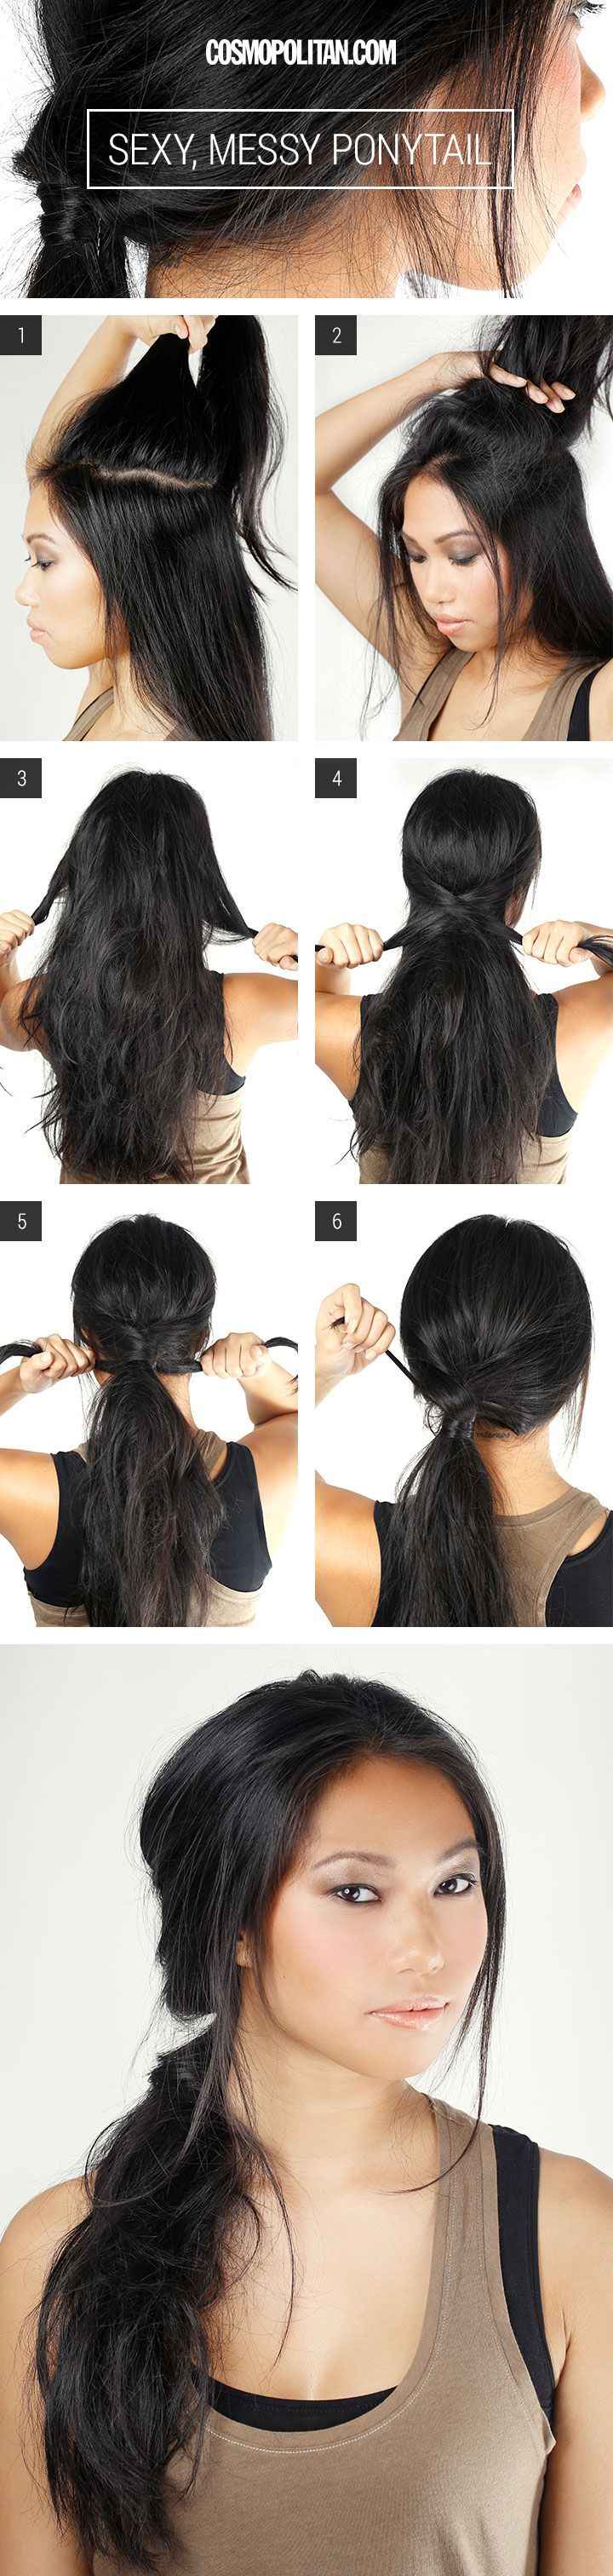 how to style your hair 139 best images about ponytails and braids on 1125